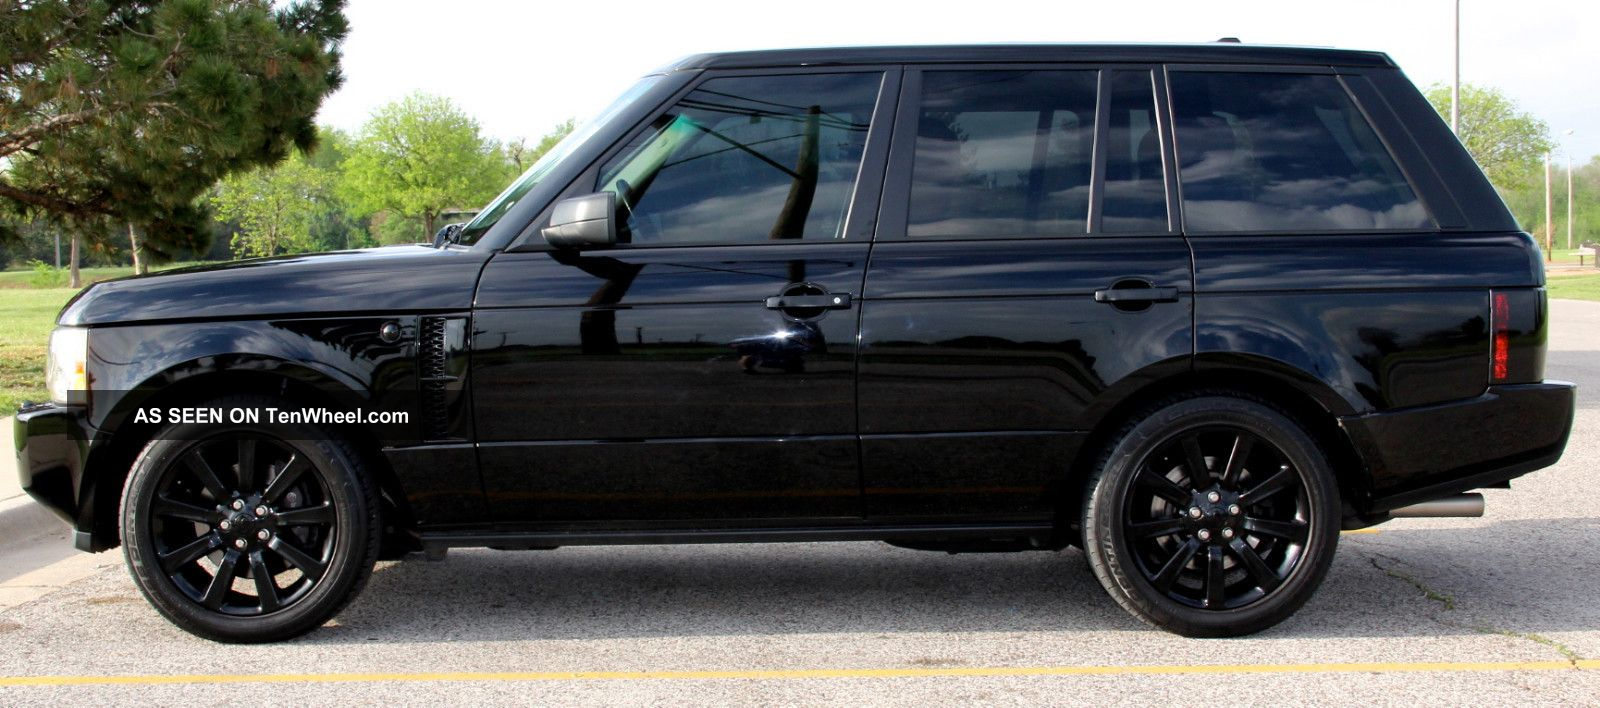 2008 Land Rover Range Rover Supercharged Sport Utility 4 ...